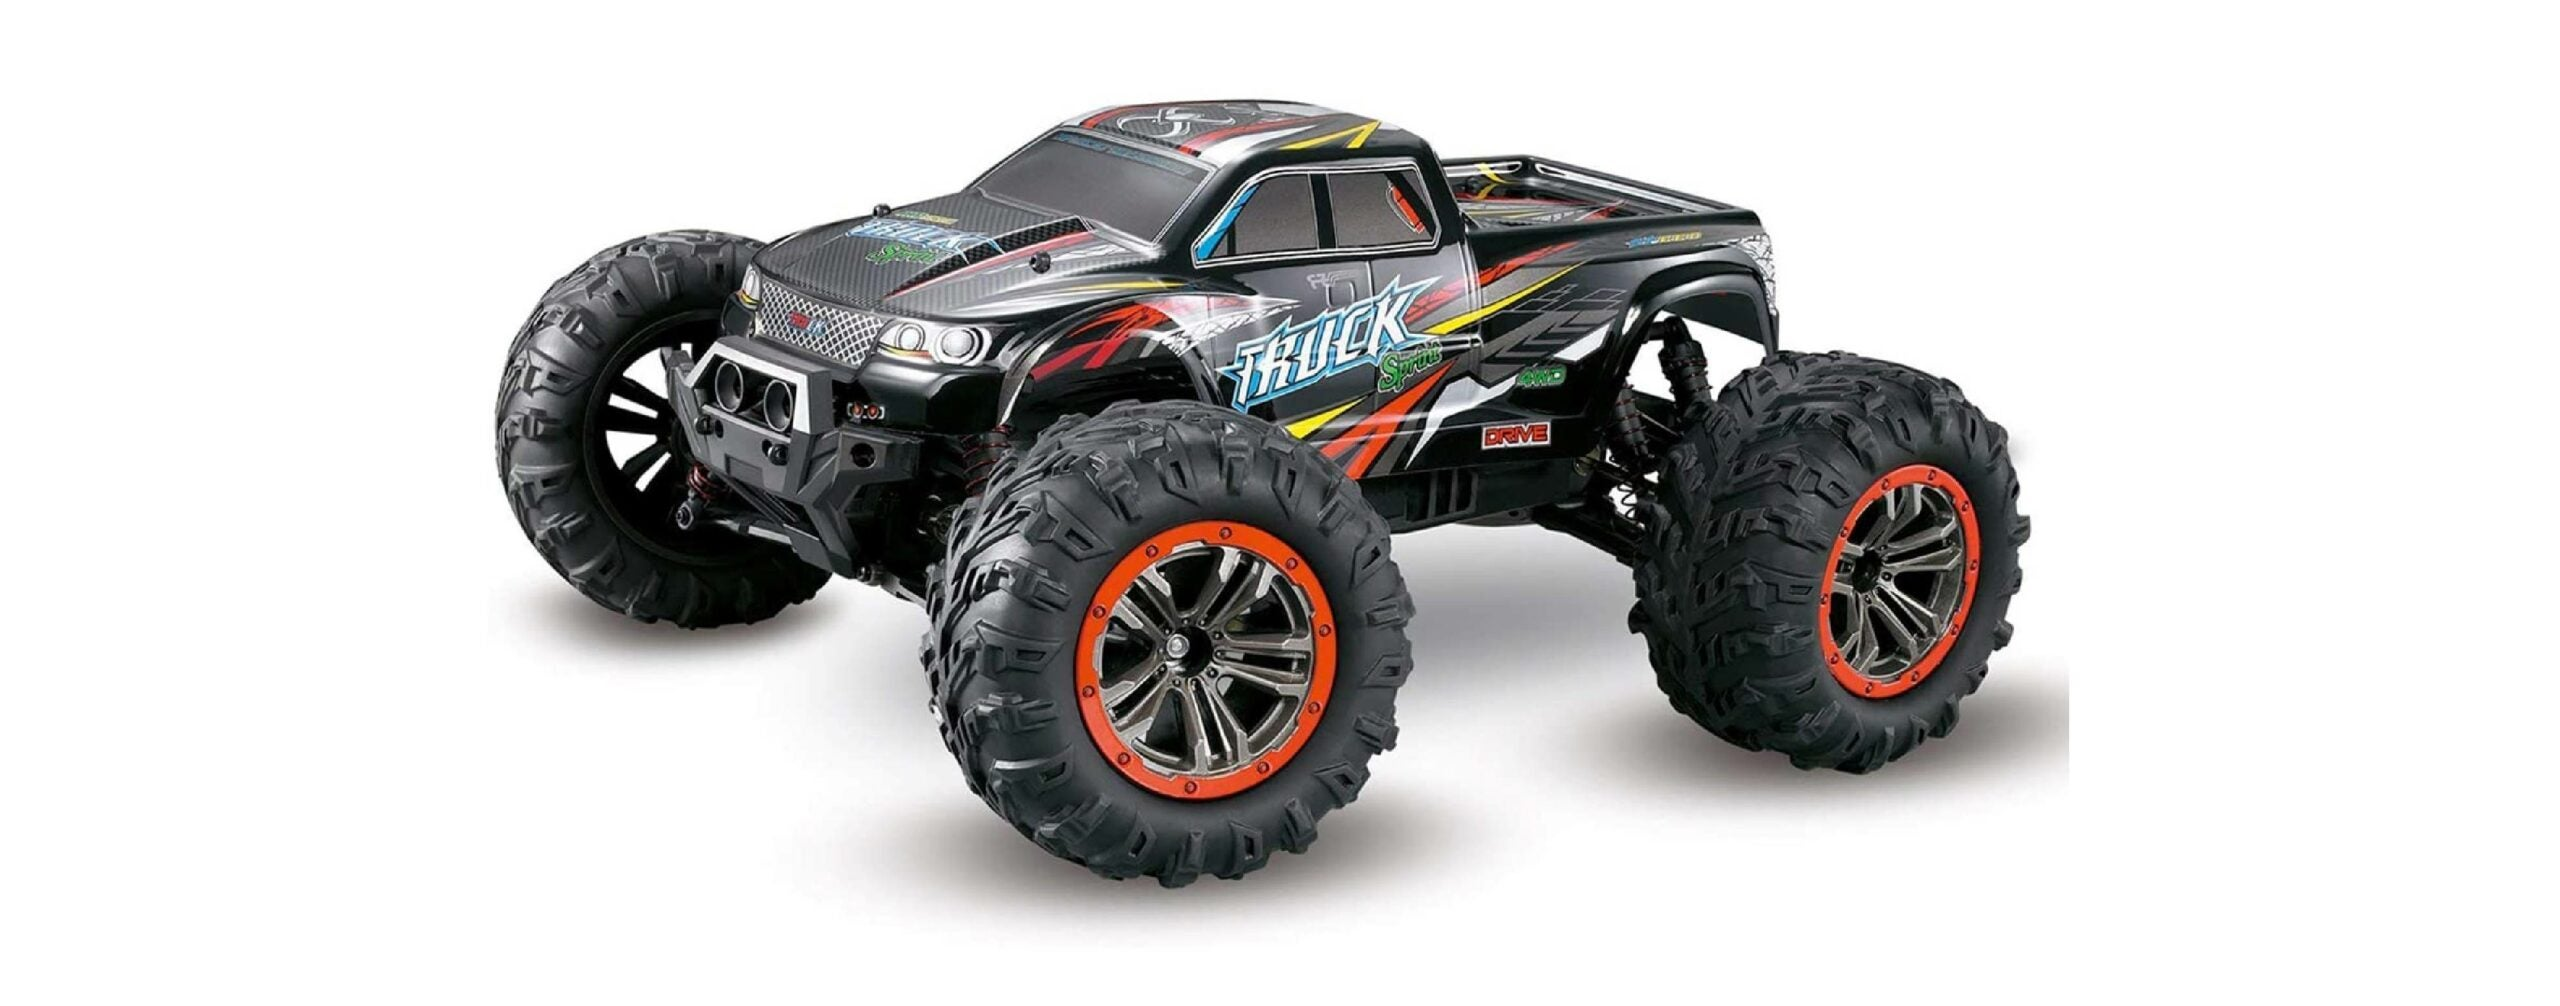 The Best RC Trucks (Review & Buying Guide) in 2021